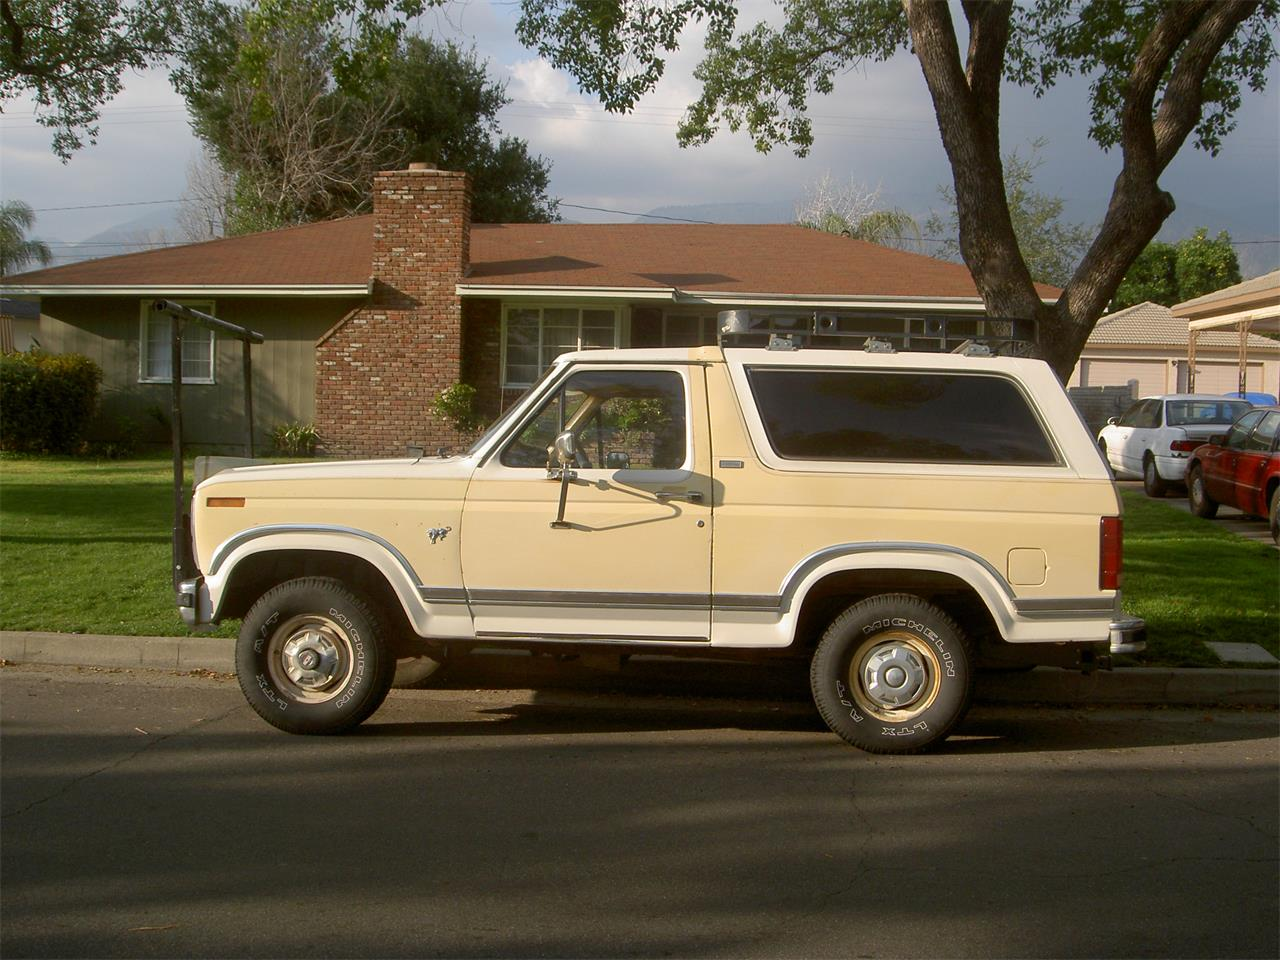 Large Picture of '81 Ford Bronco located in San Bernardino California - $8,000.00 - N5DO